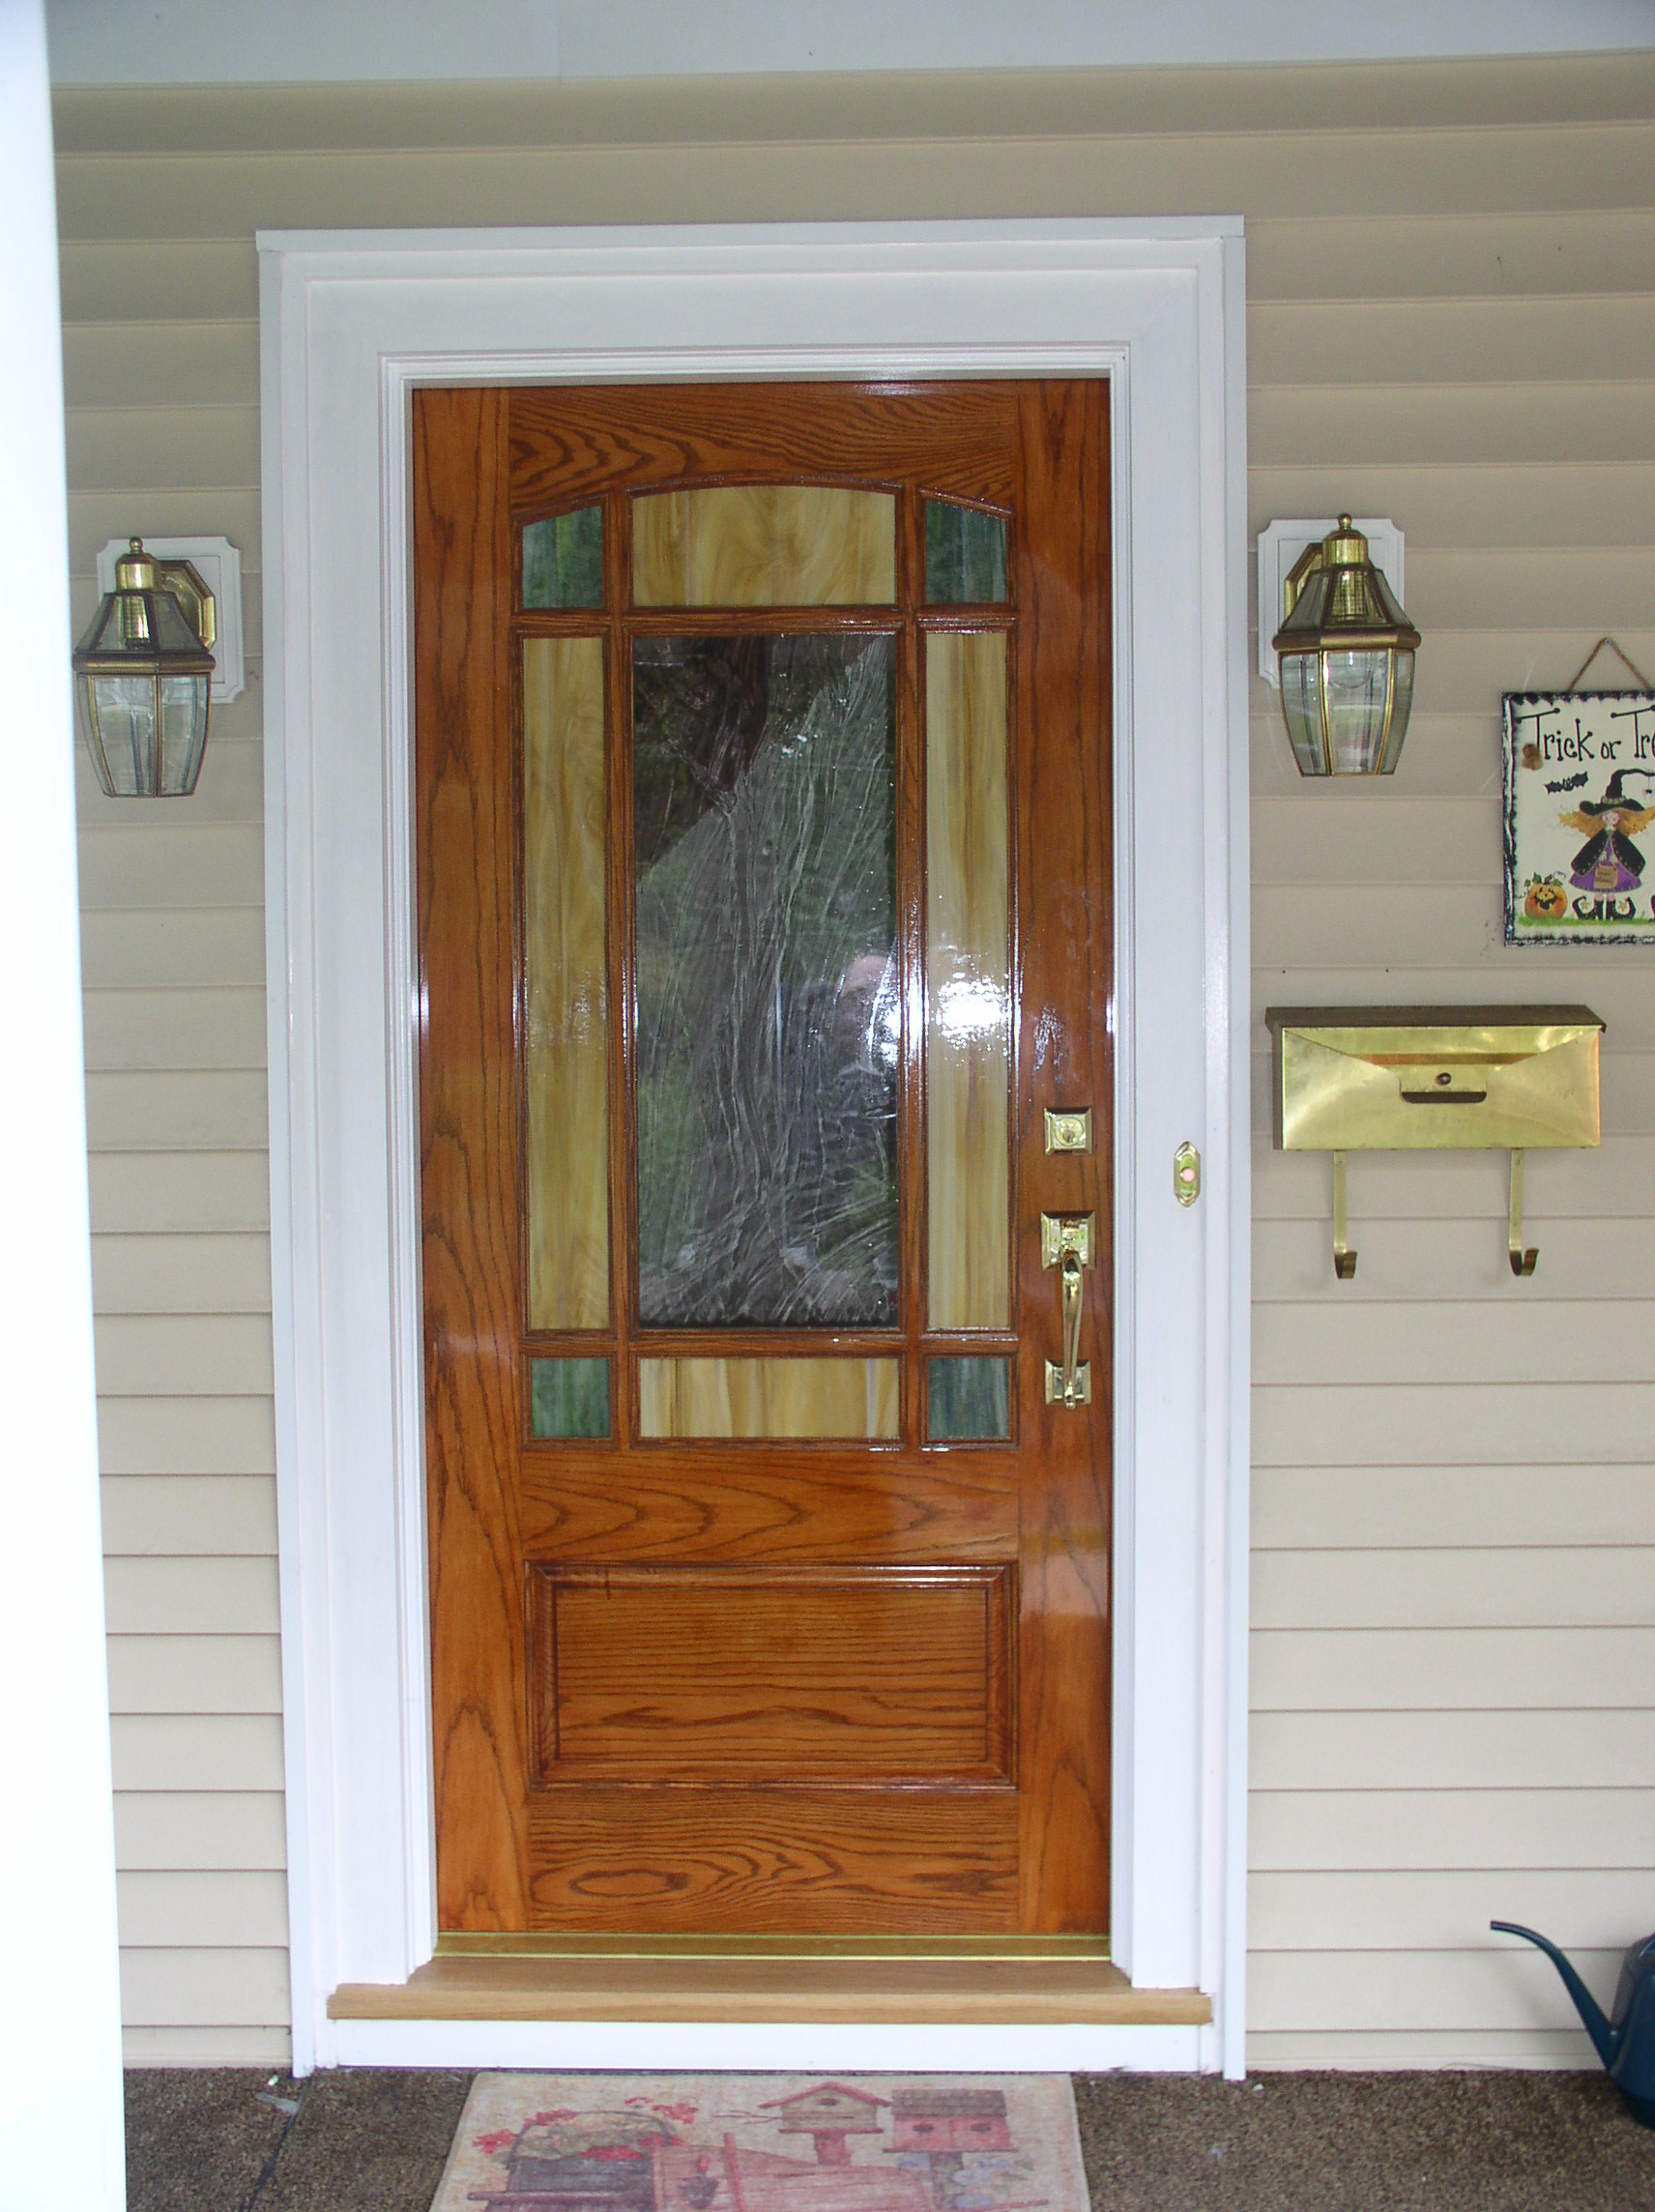 2288 #784220 Arts & Crafts Style Entry Door image Stained Glass Entry Doors 41831712